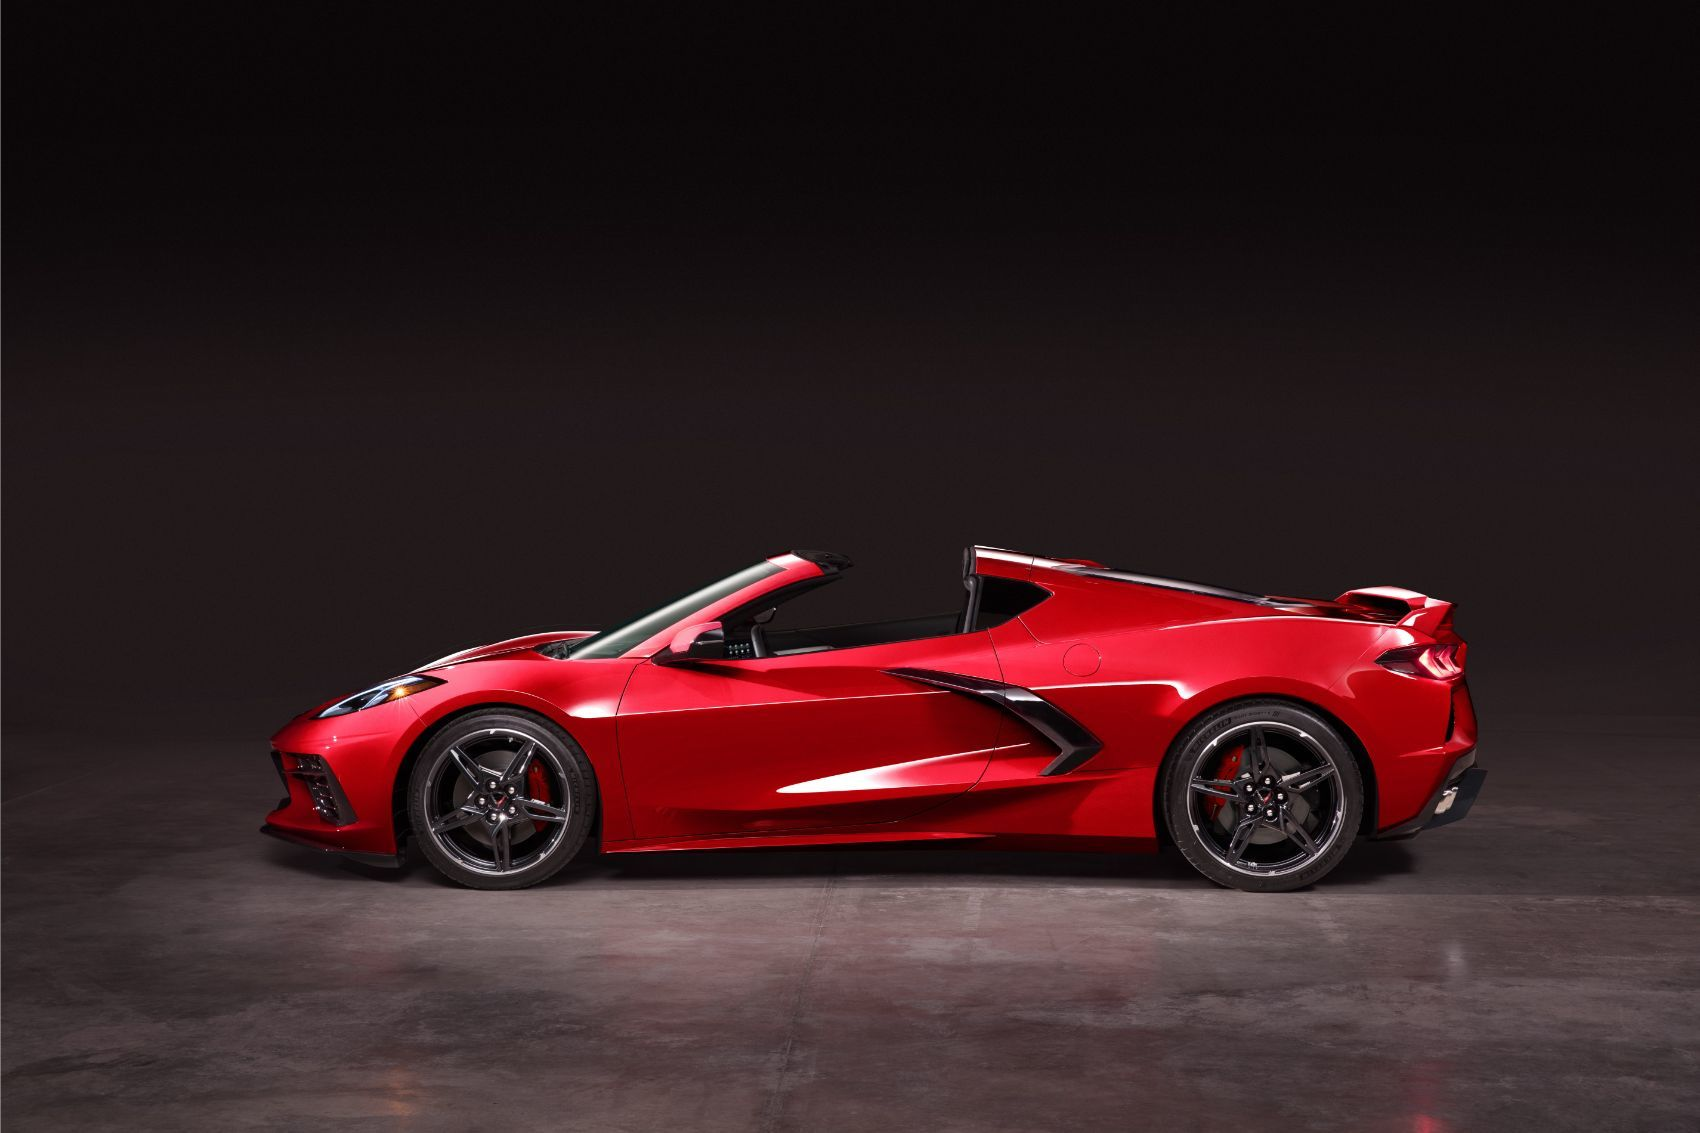 2020 Chevrolet Corvette Stingray 042